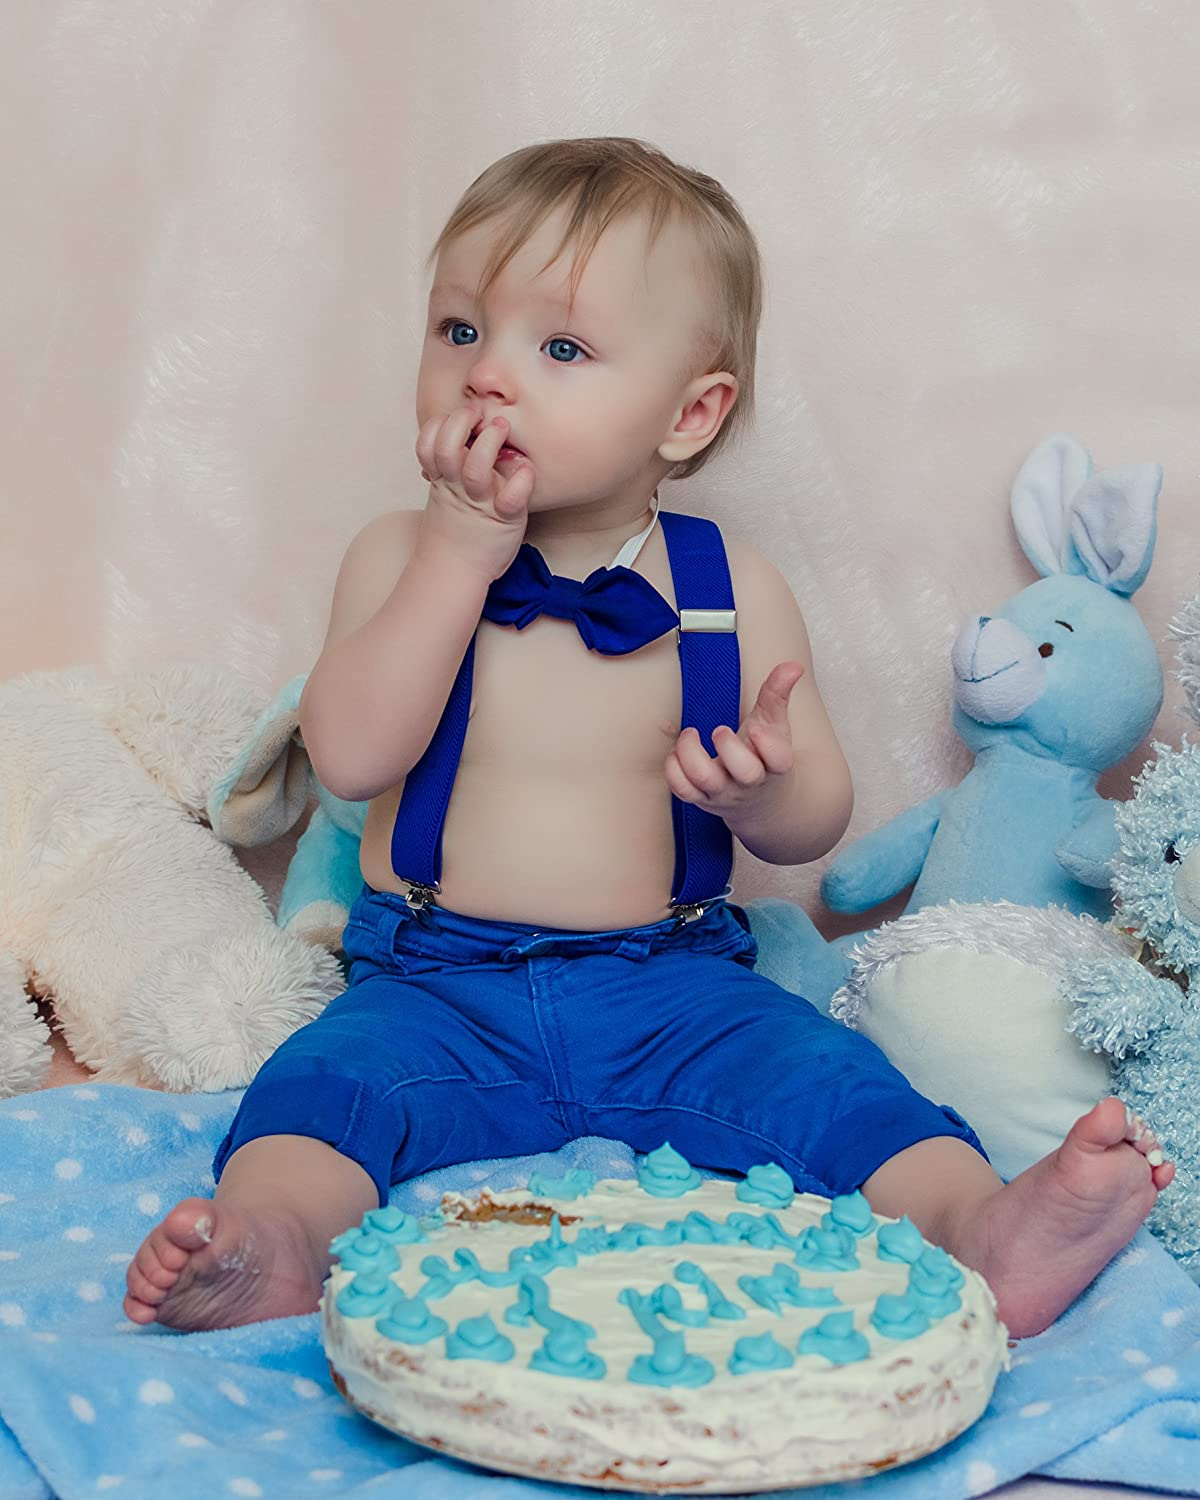 Elastic Y-Back Design with Strong Metal Clips Navisima Adjustable Suspender With Bowtie for Kids